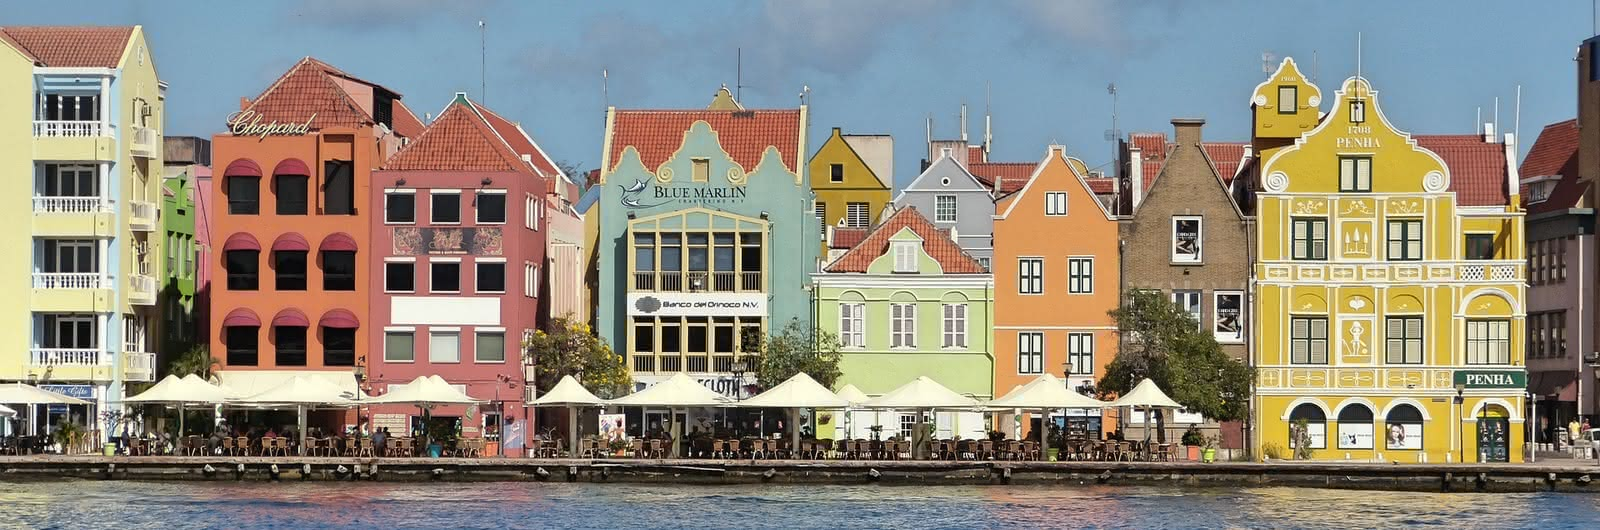 curacao country header